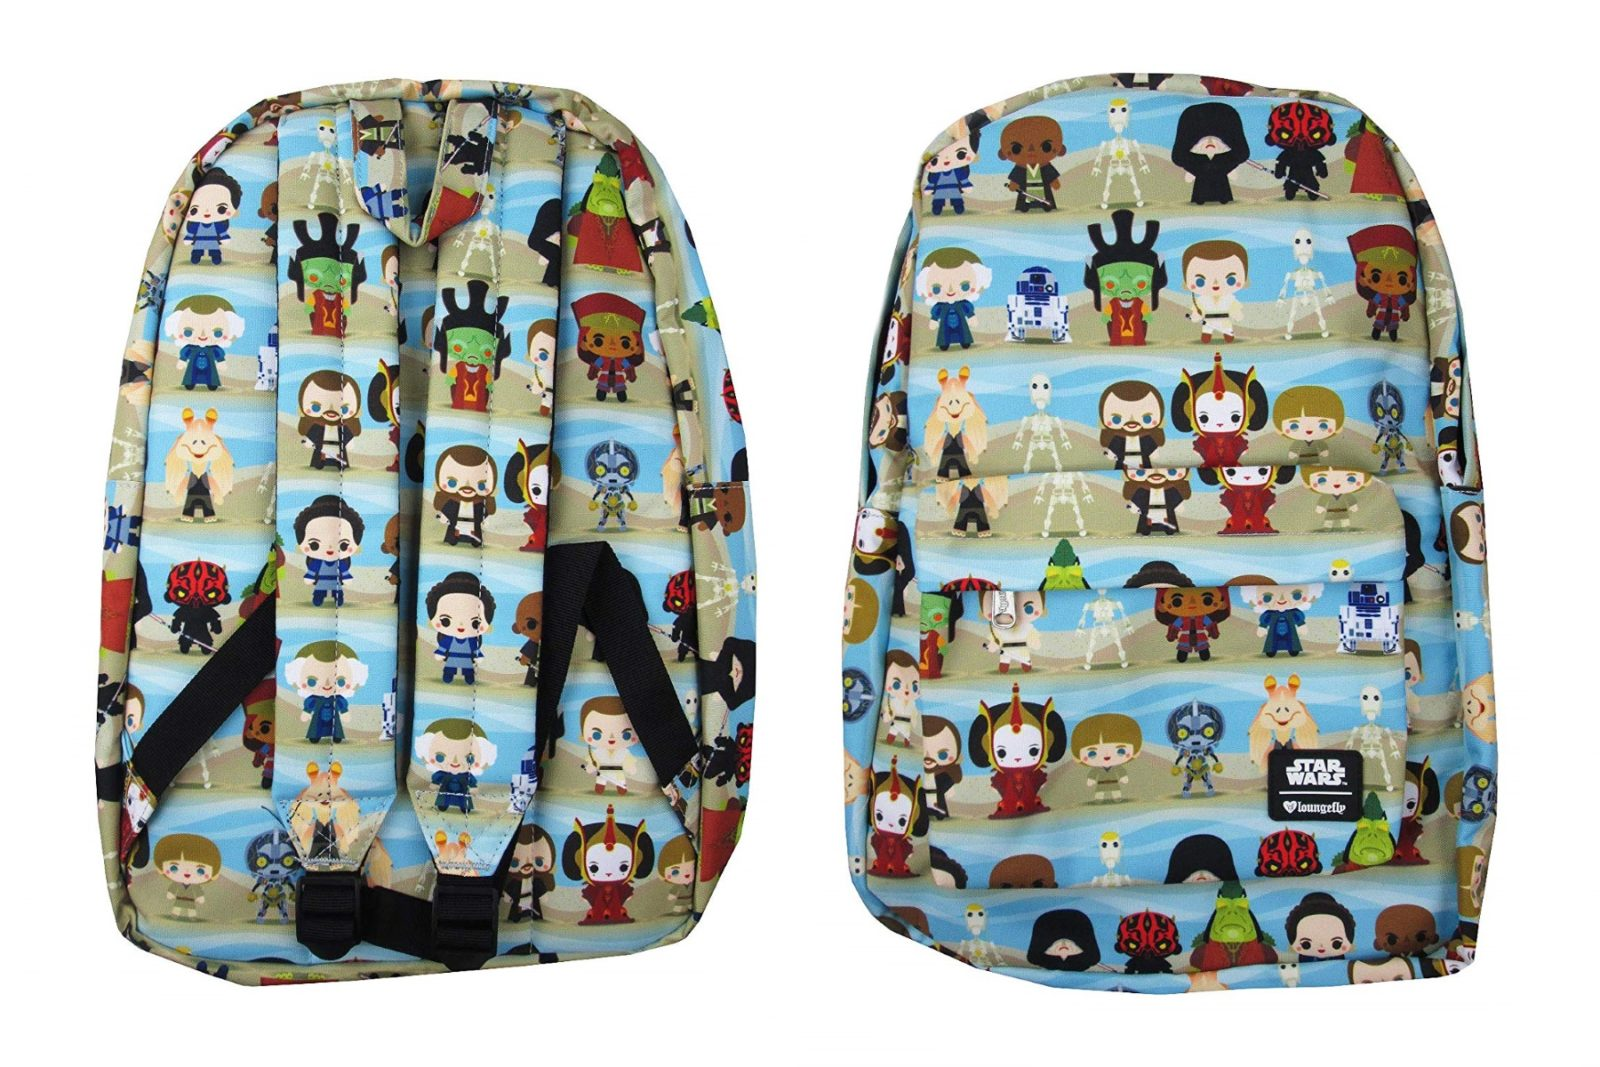 Loungefly TPM Chibi Backpack on Amazon!